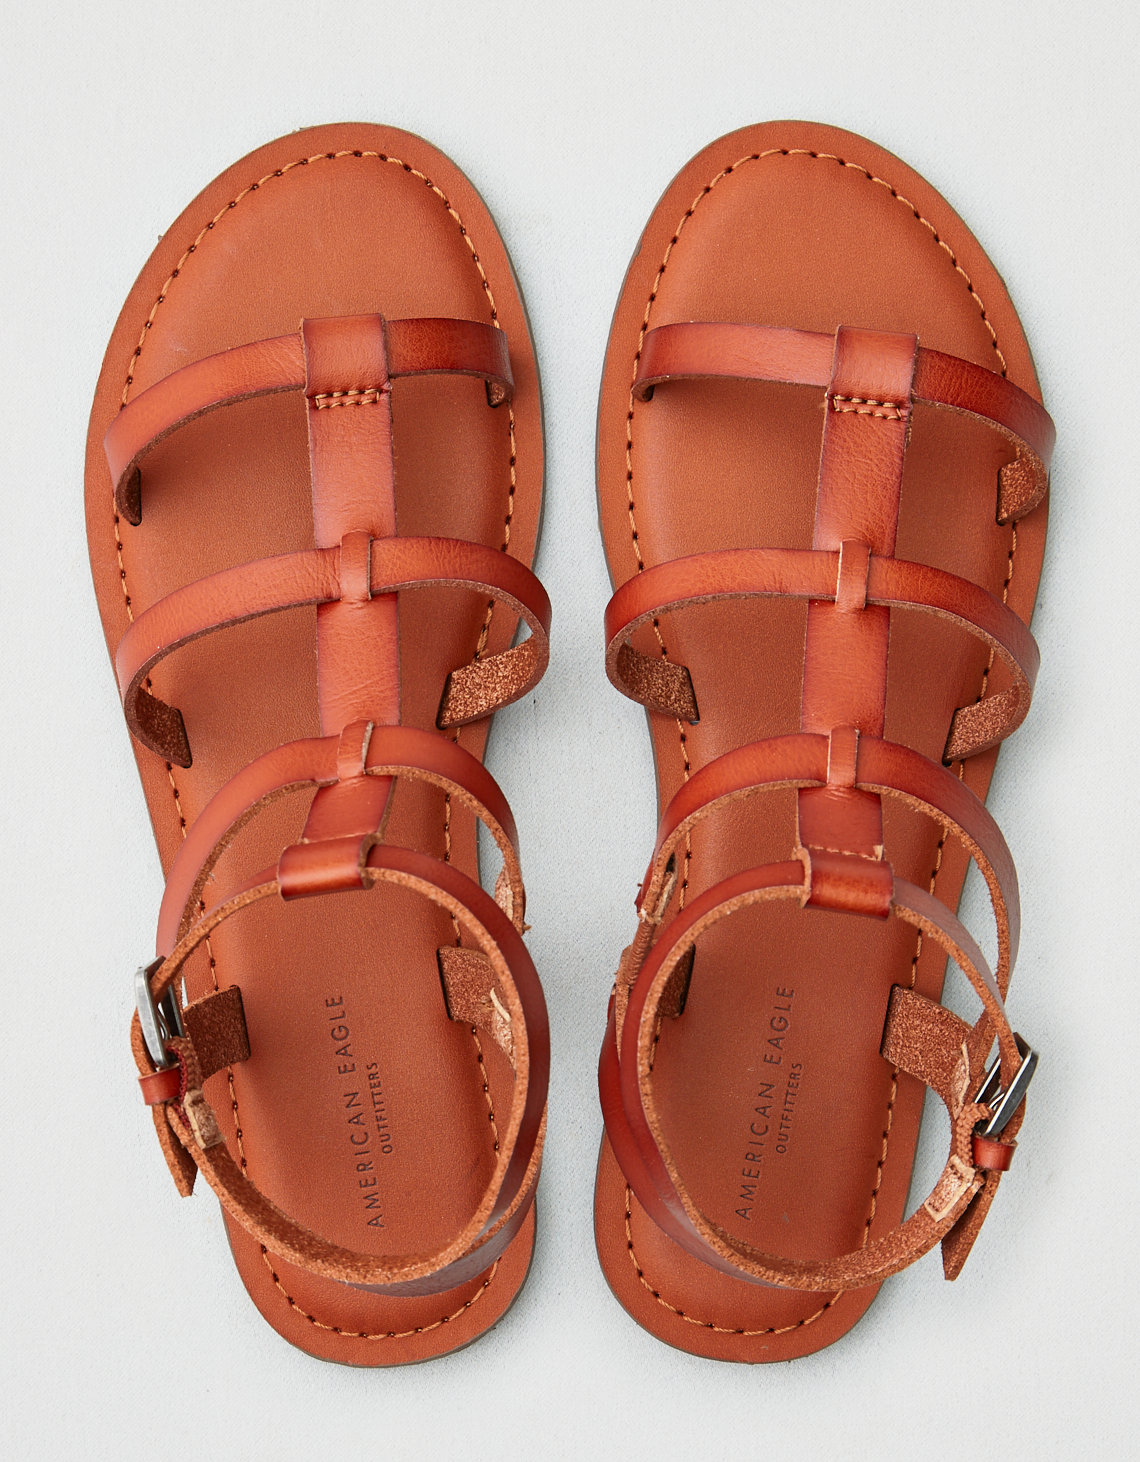 0e8d945a89d2 AEO Gladiator Sandal. Placeholder image. Product Image